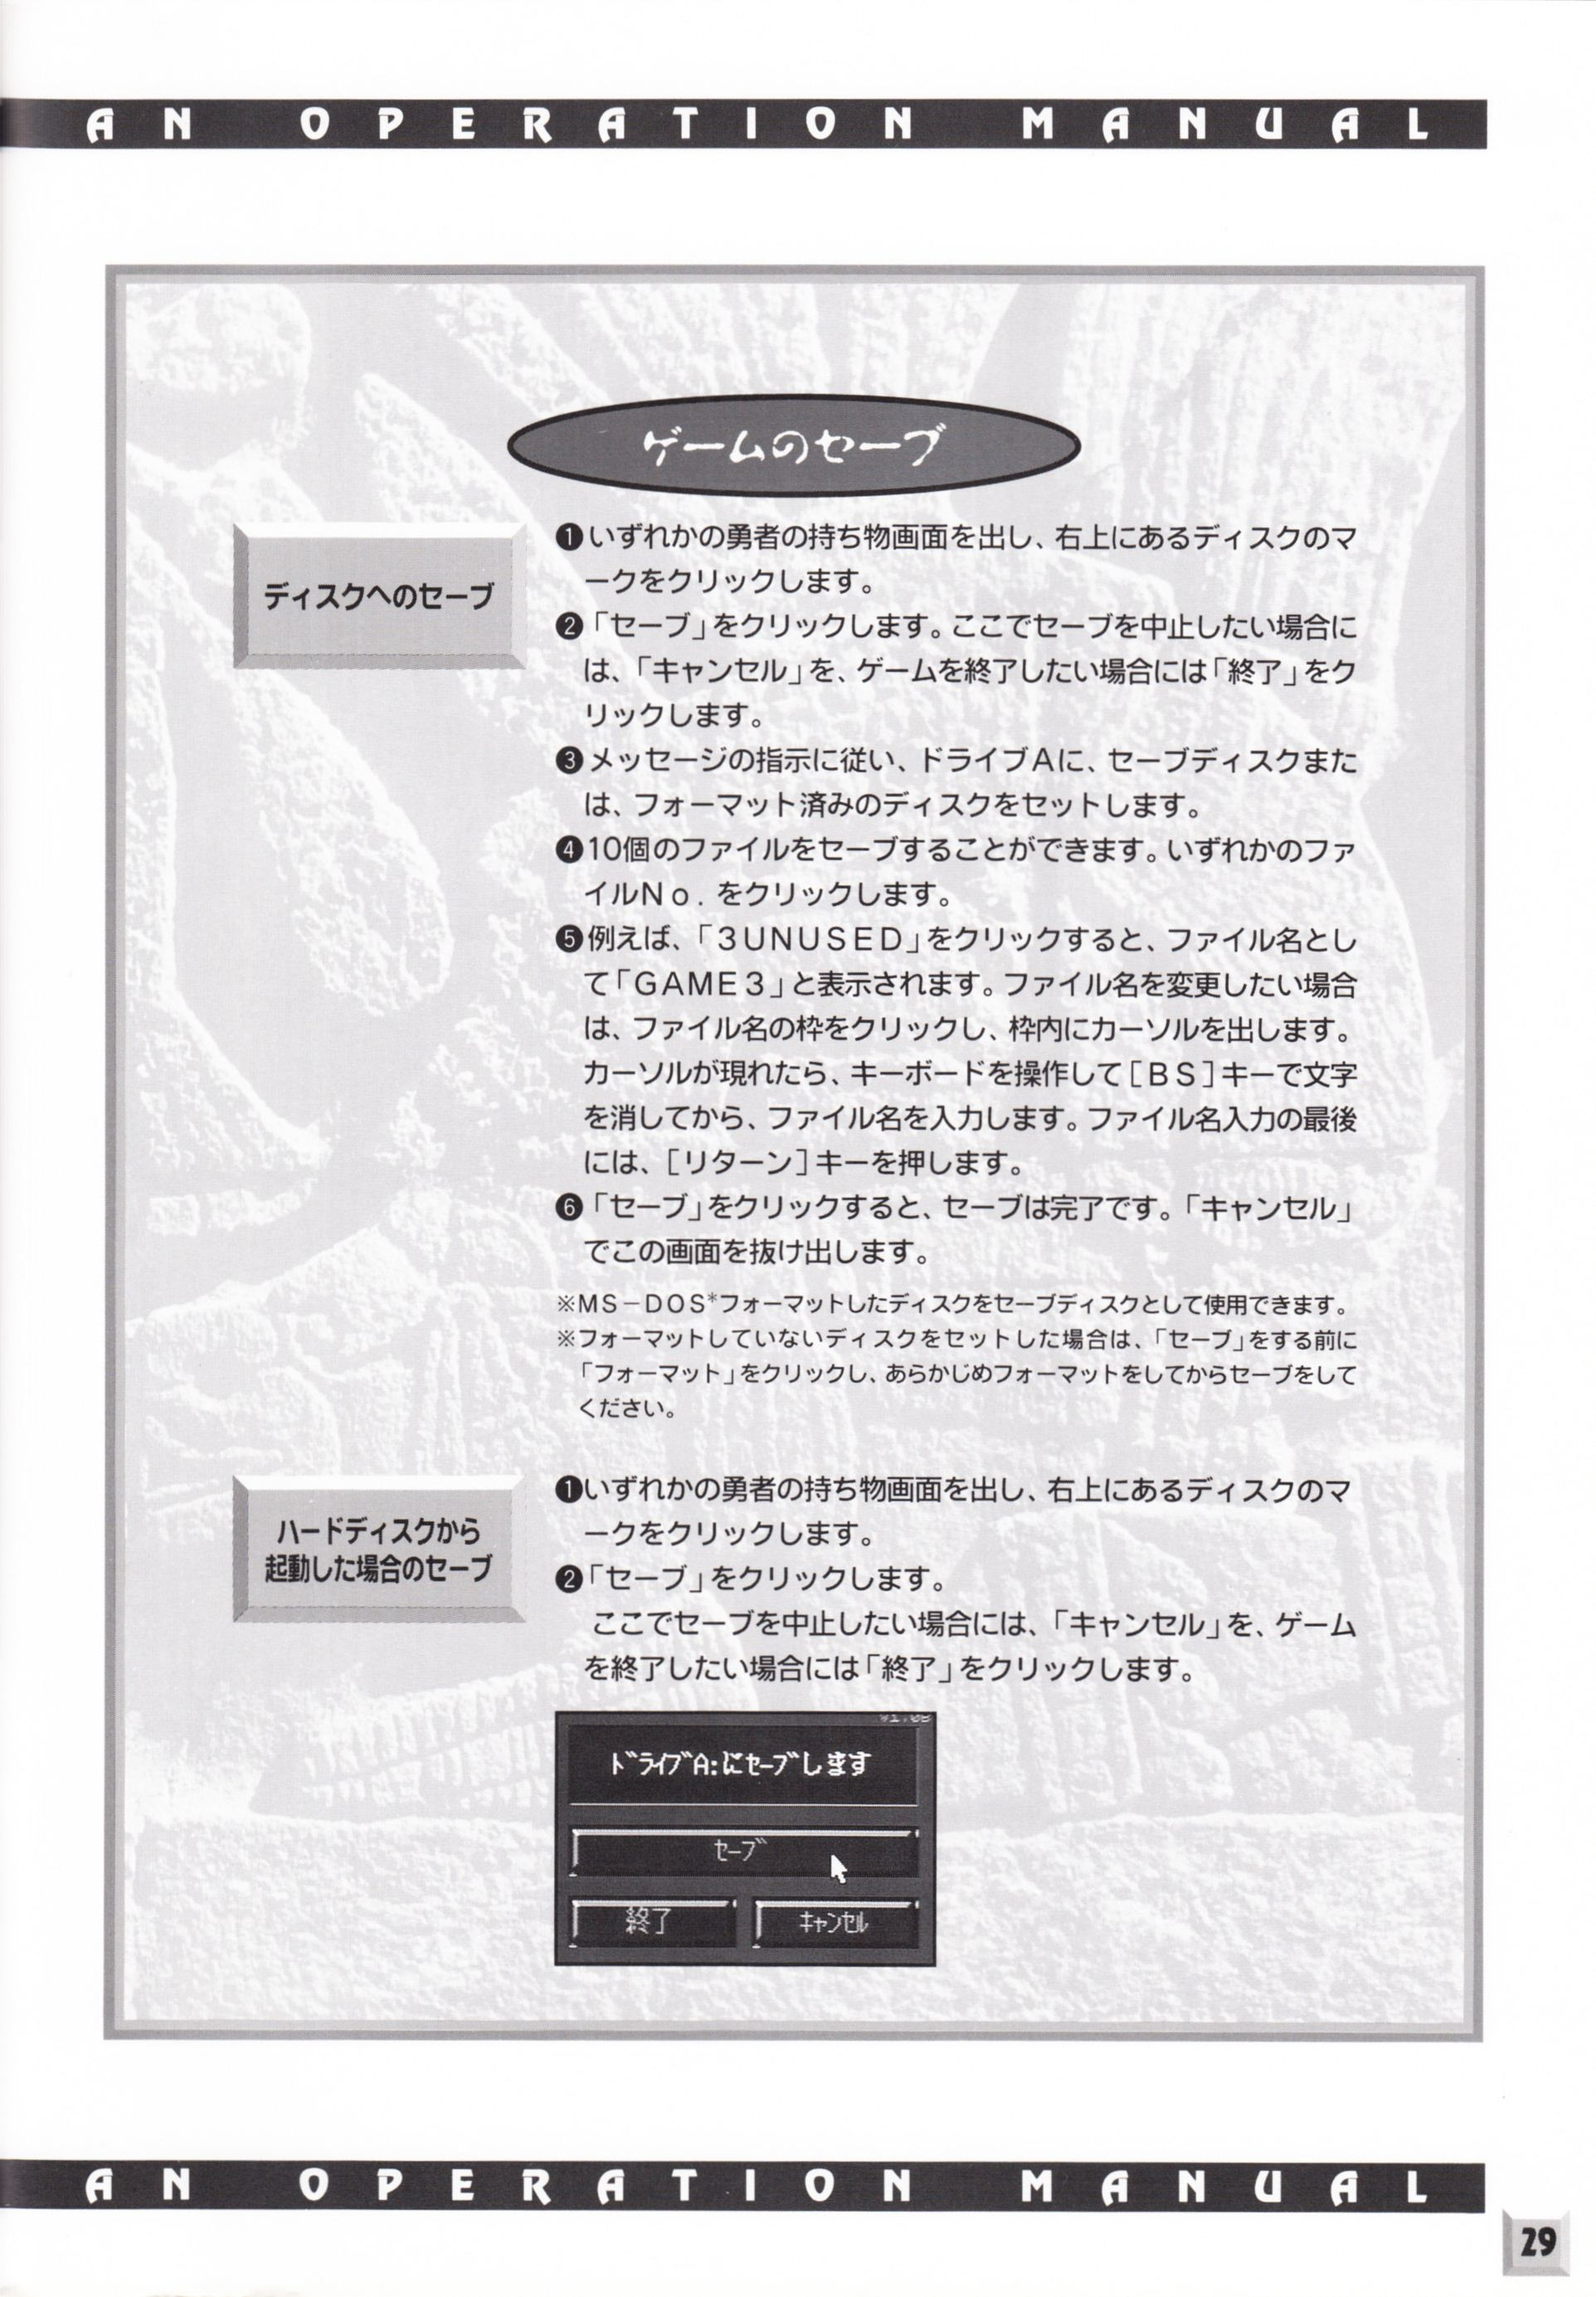 Game - Dungeon Master II - JP - PC-9801 - 3.5-inch - An Operation Manual - Page 031 - Scan